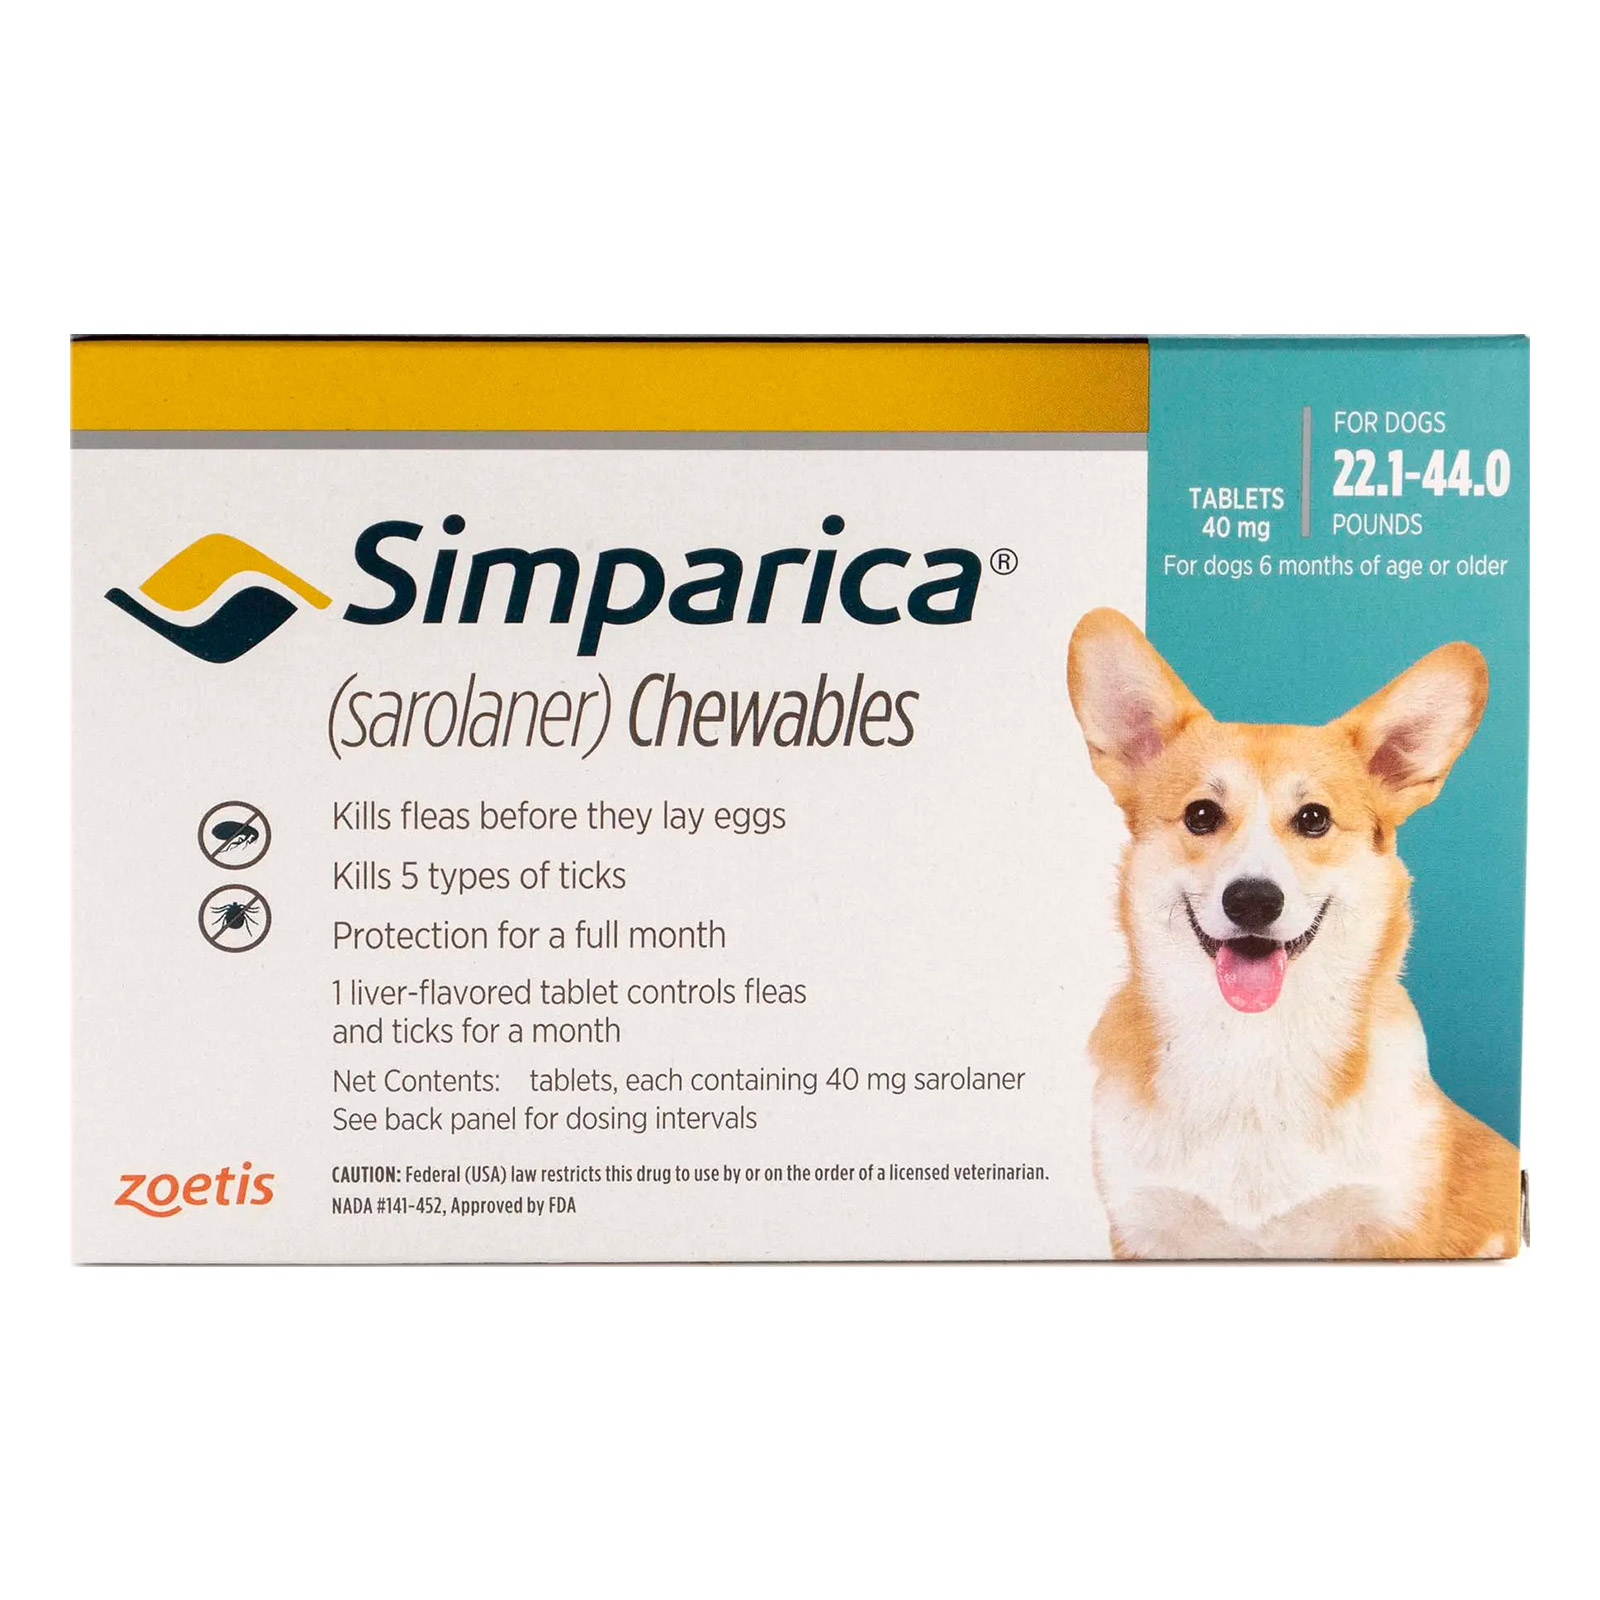 Simparica Chewables For Dogs 22.1-44 Lbs Blue 1 Pack